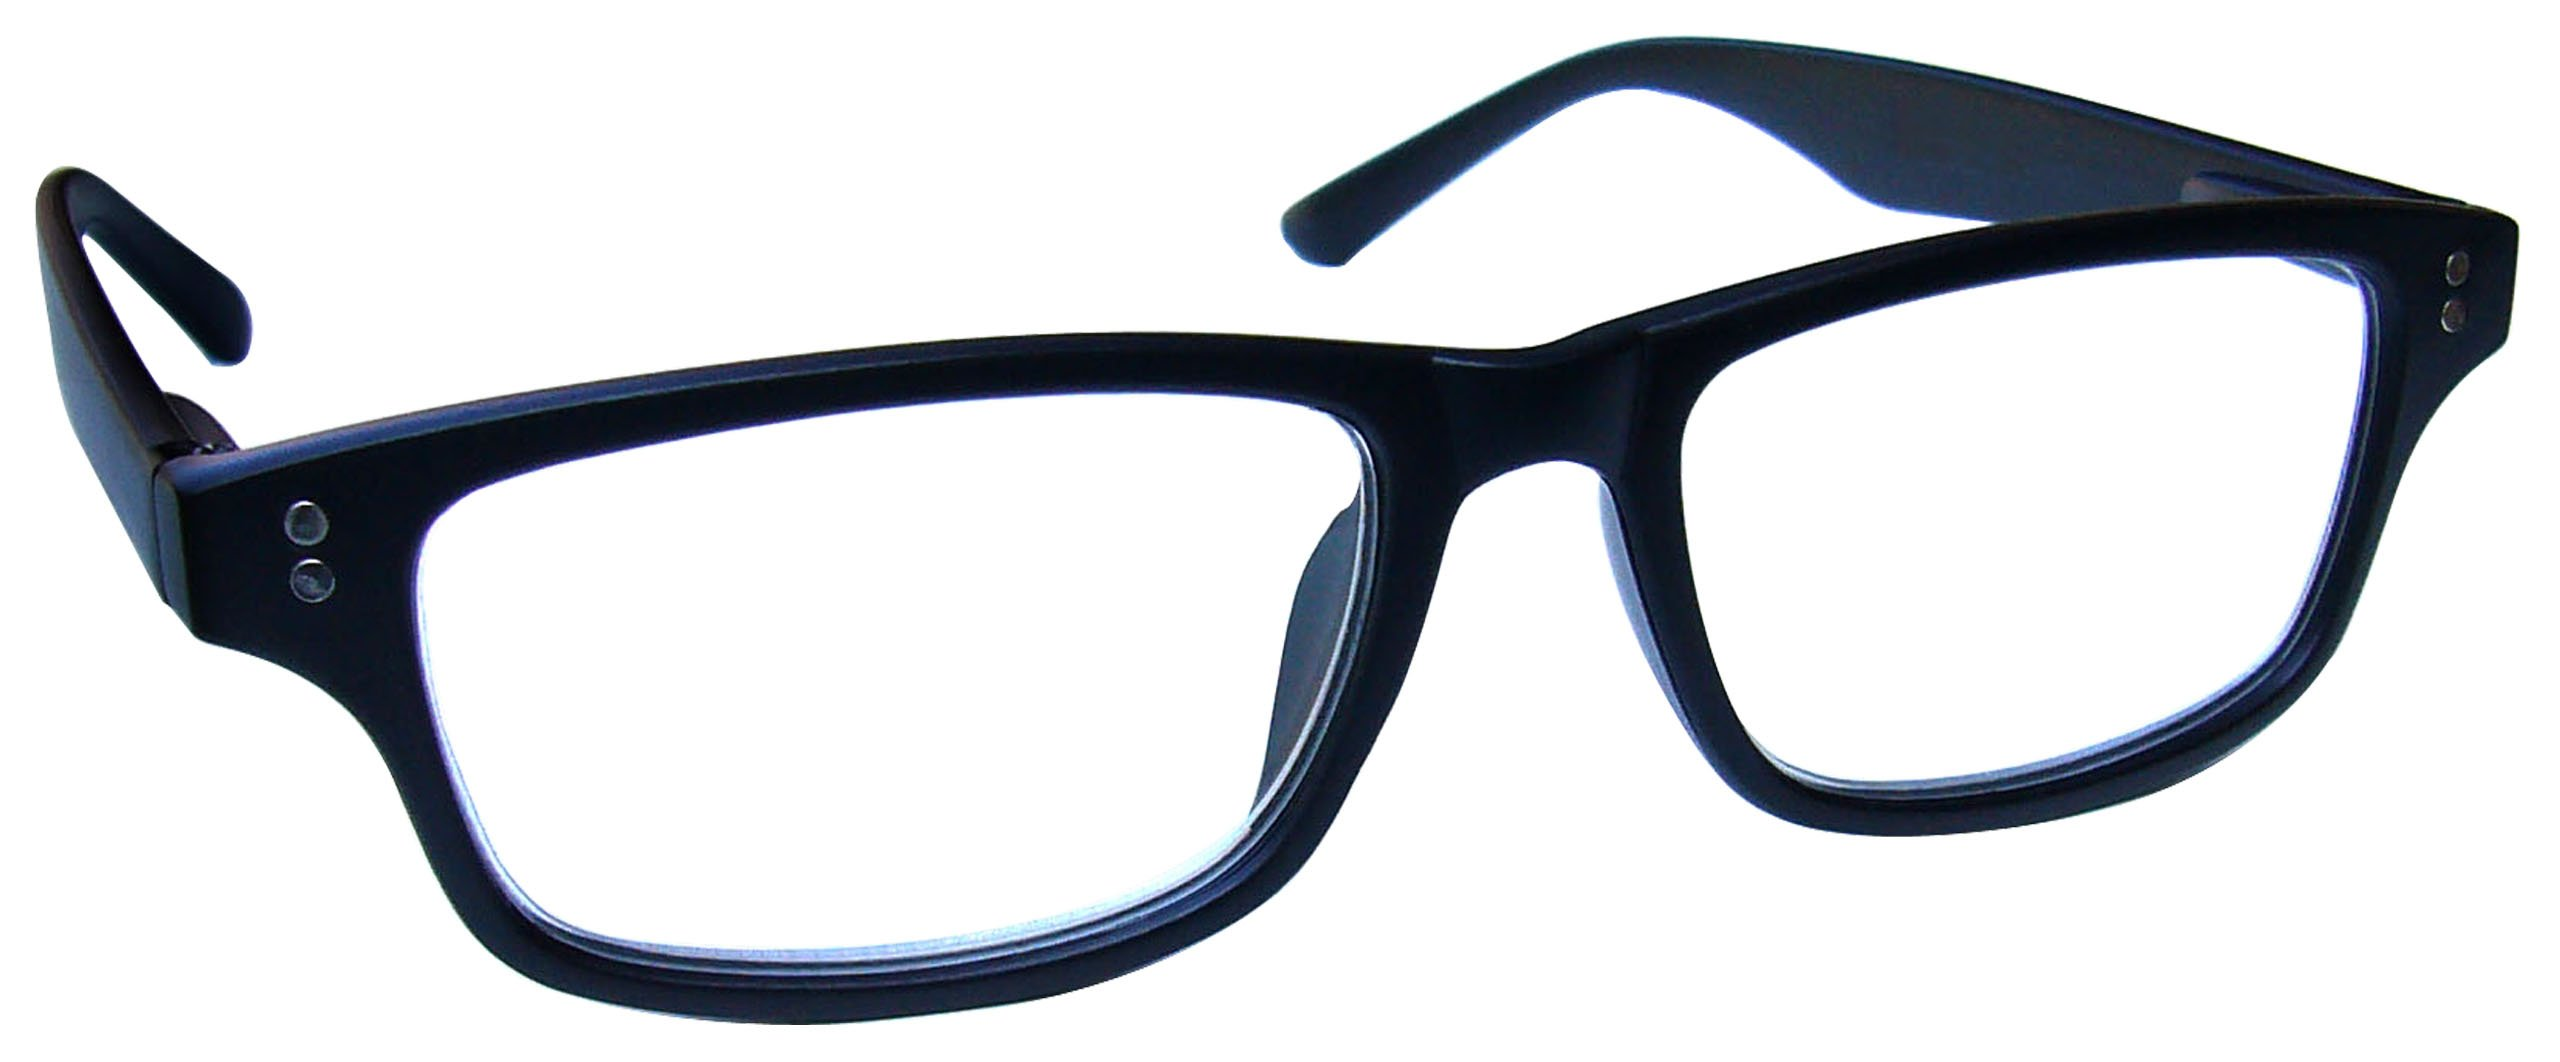 42cec443ec4 The Reading Glasses Company Black Matt Rubberized Readers Mens Womens  Spring Hinges R33-1 +